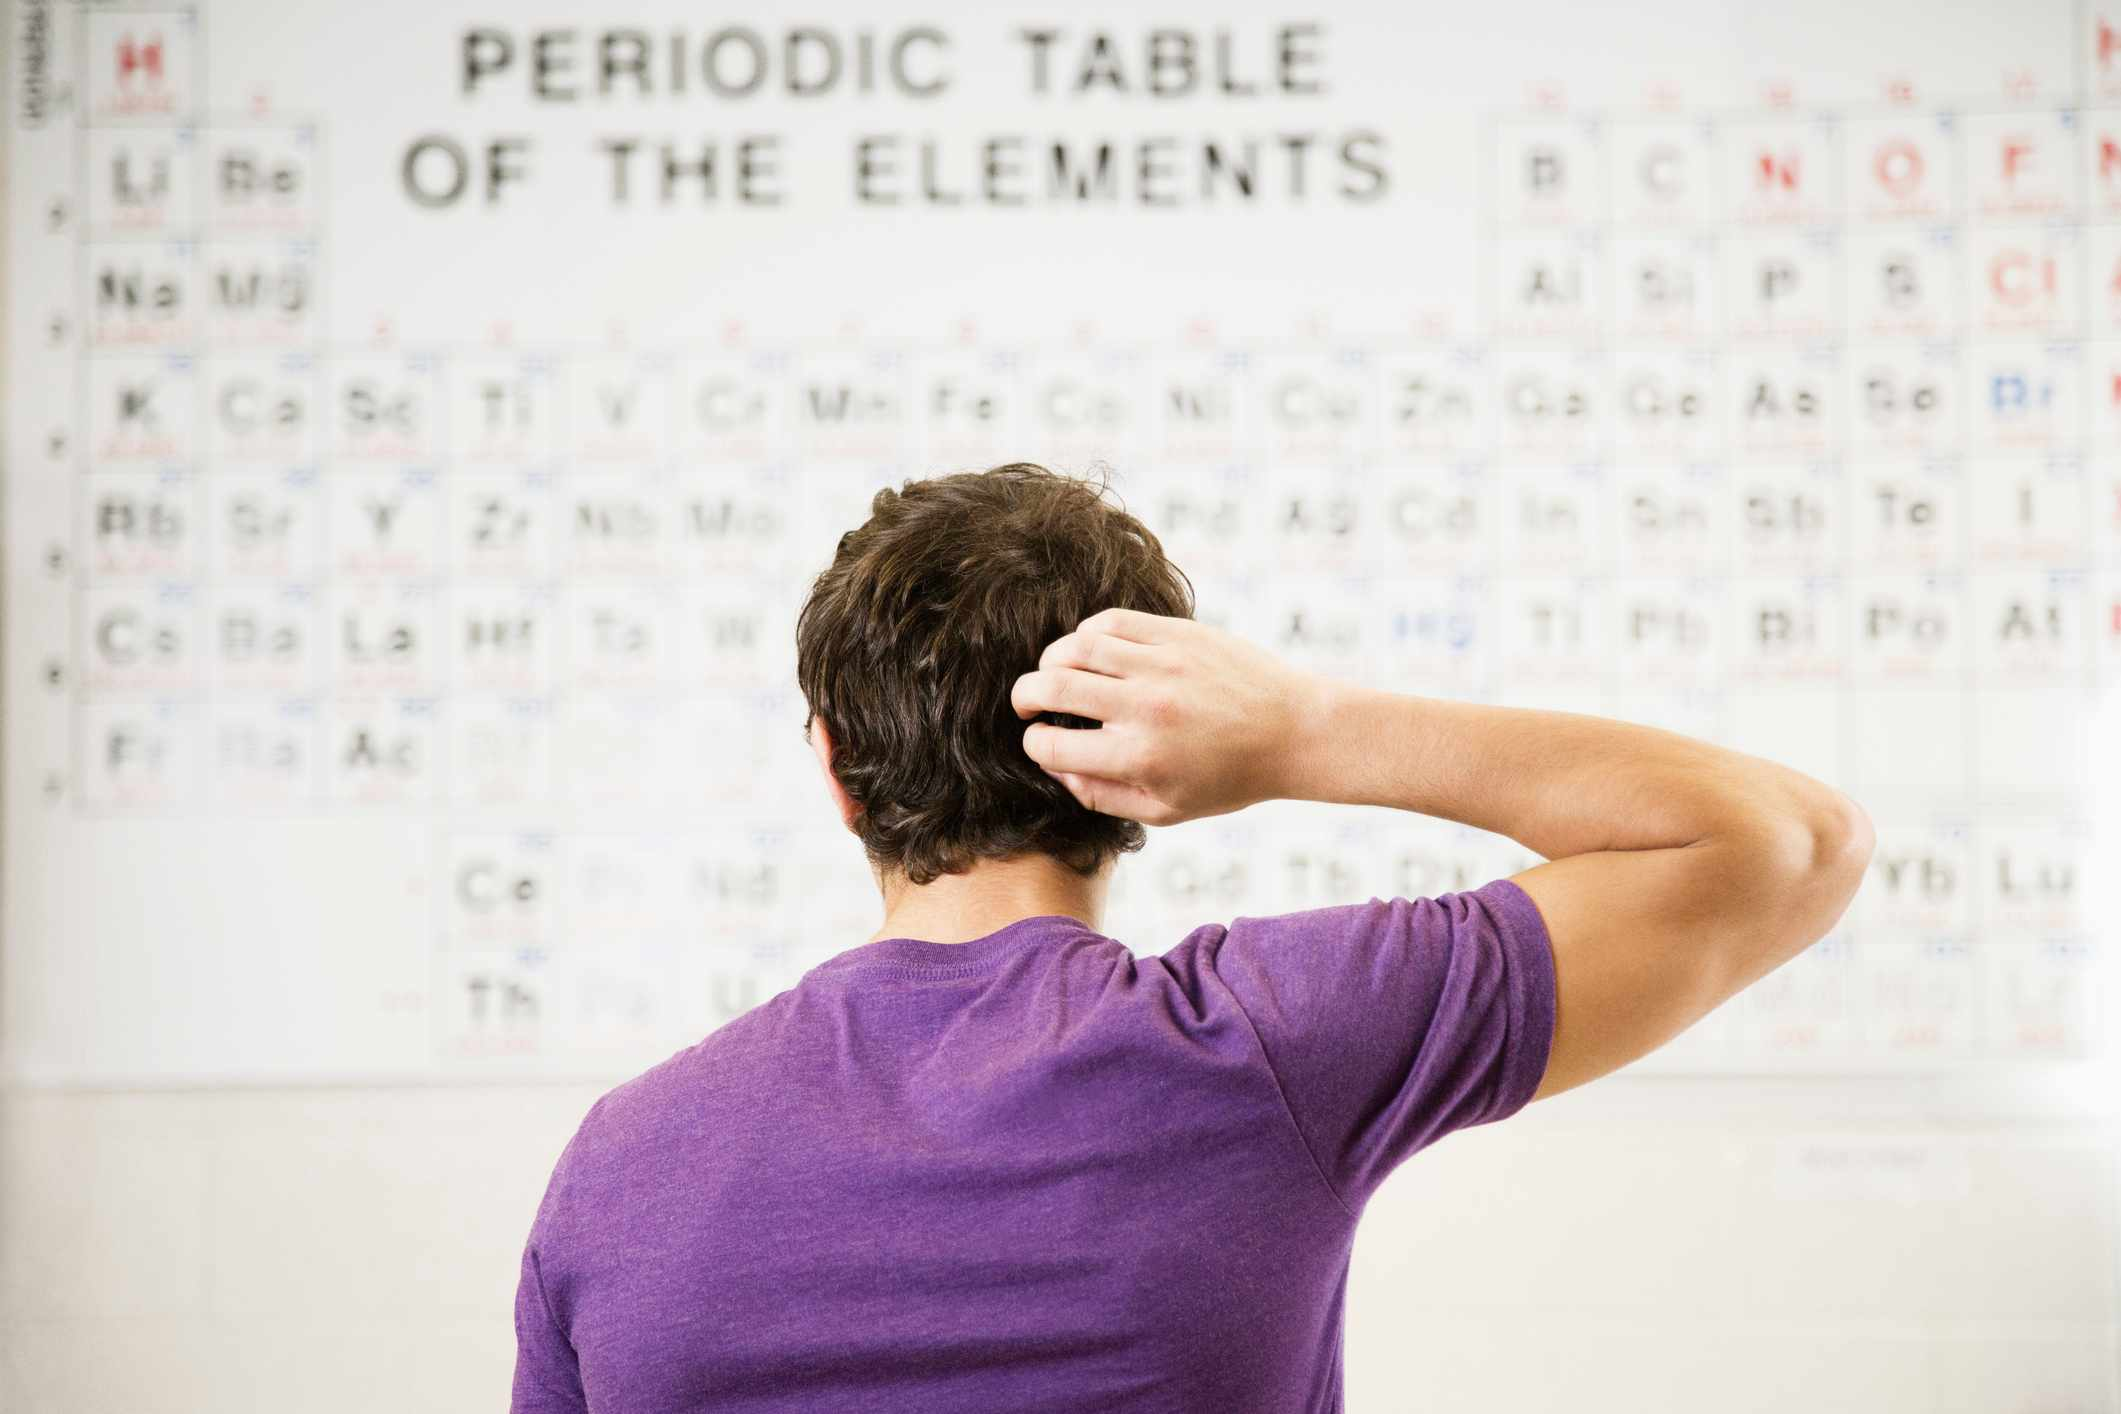 Who invented the periodic table? © Getty Images